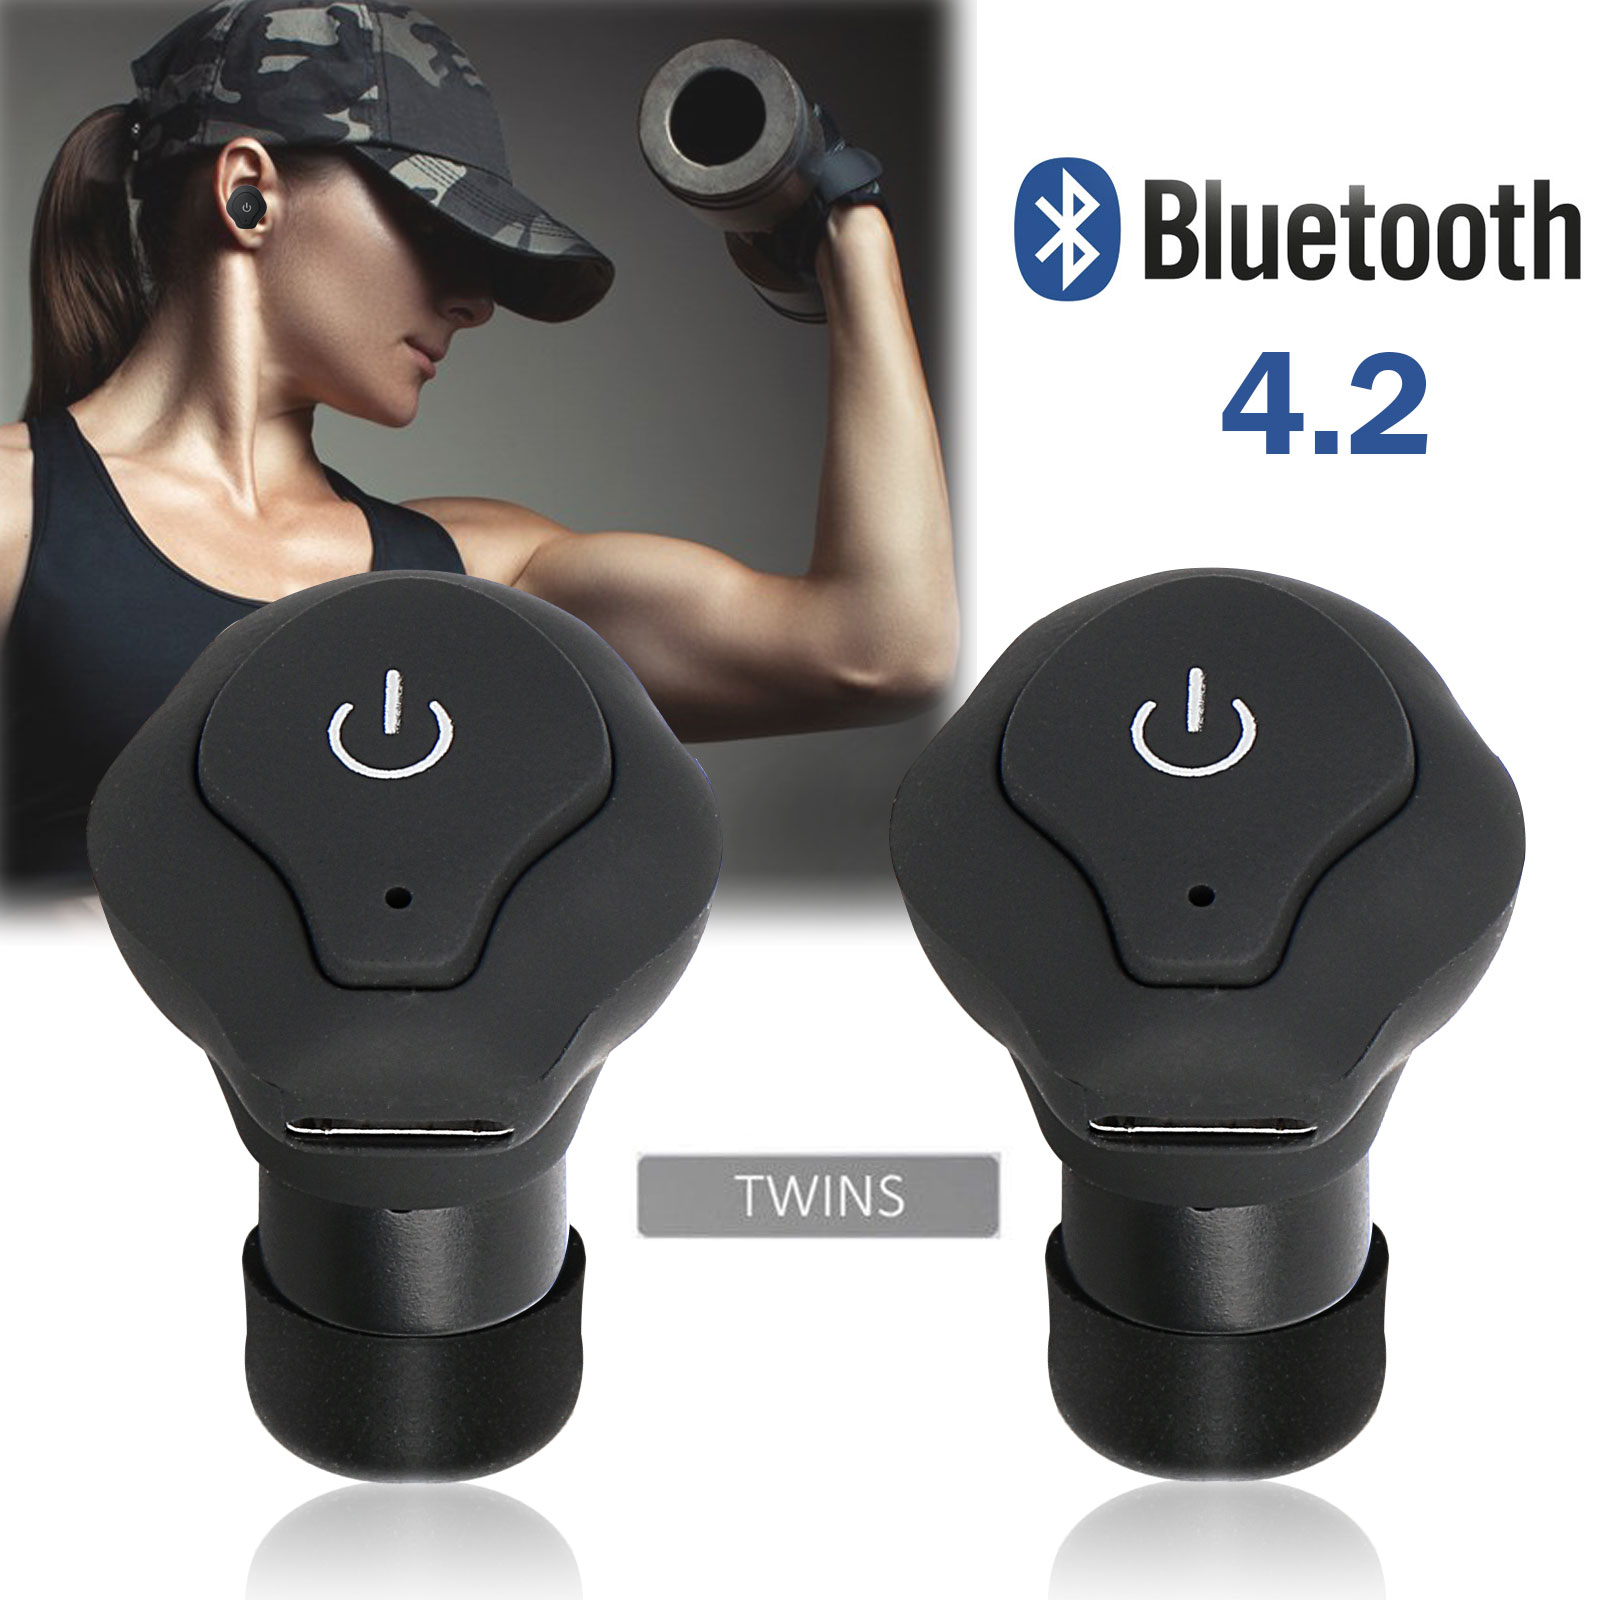 Mini Wireless Earbuds, 1-set Bluetooth Earphone Smallest Wireless Invisible Headset Headphone with Mic Hands-free Calling for iPhone and Android Smart Phones